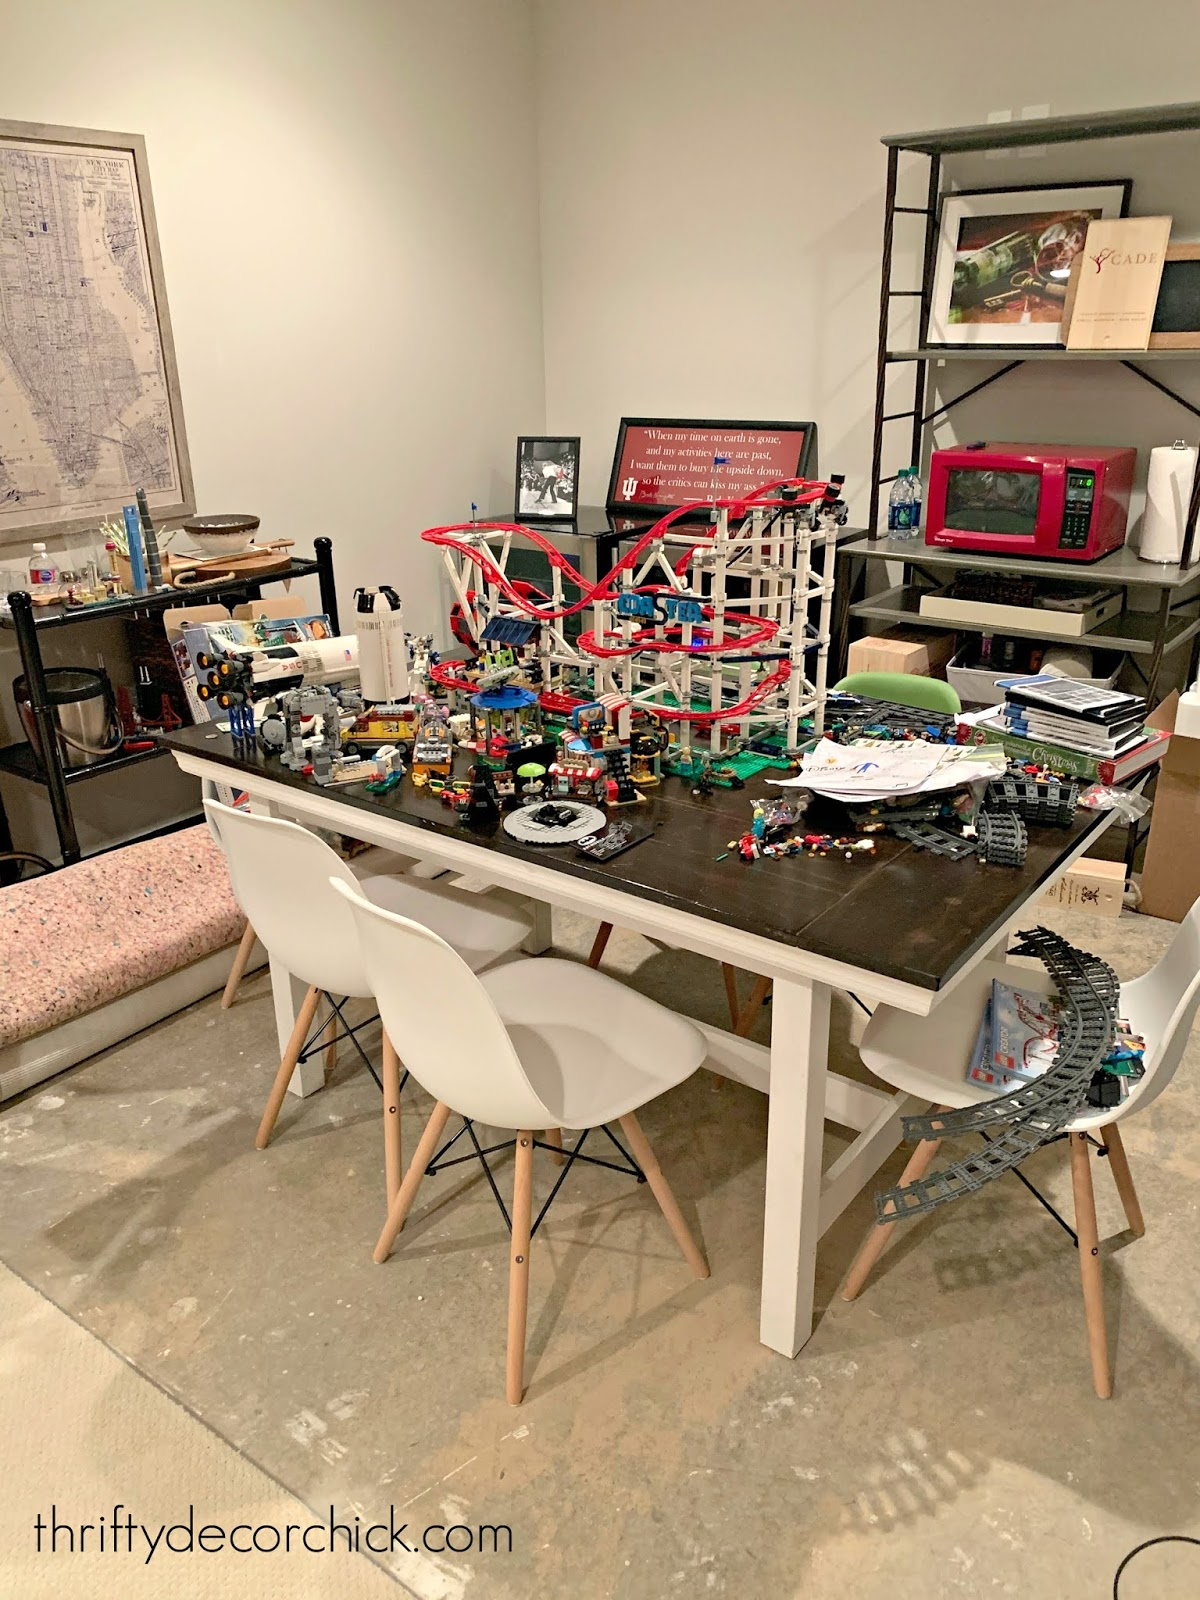 Decrapifying our biggest problem area from Thrifty Decor Chick